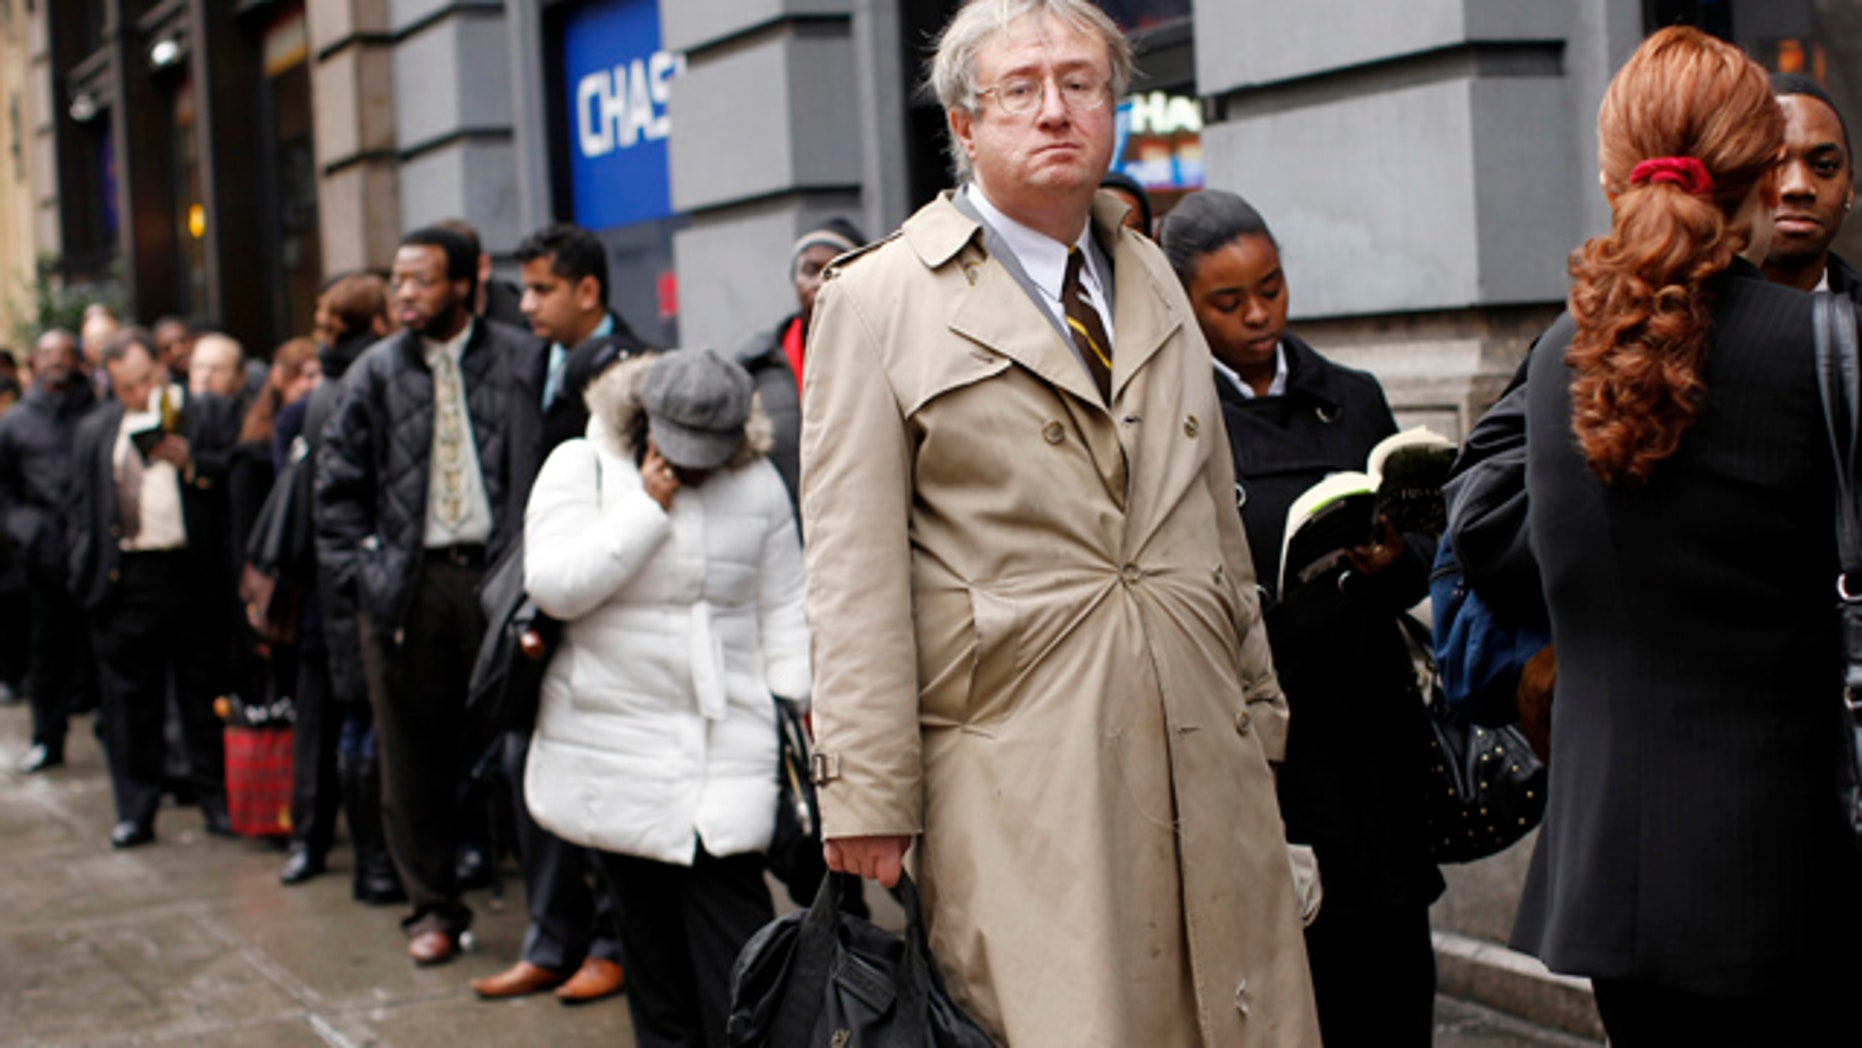 FILE: Eric Lipps, 52, waits in line to enter the NYCHires Job Fair on Dec. 9, 2009, in New York City.